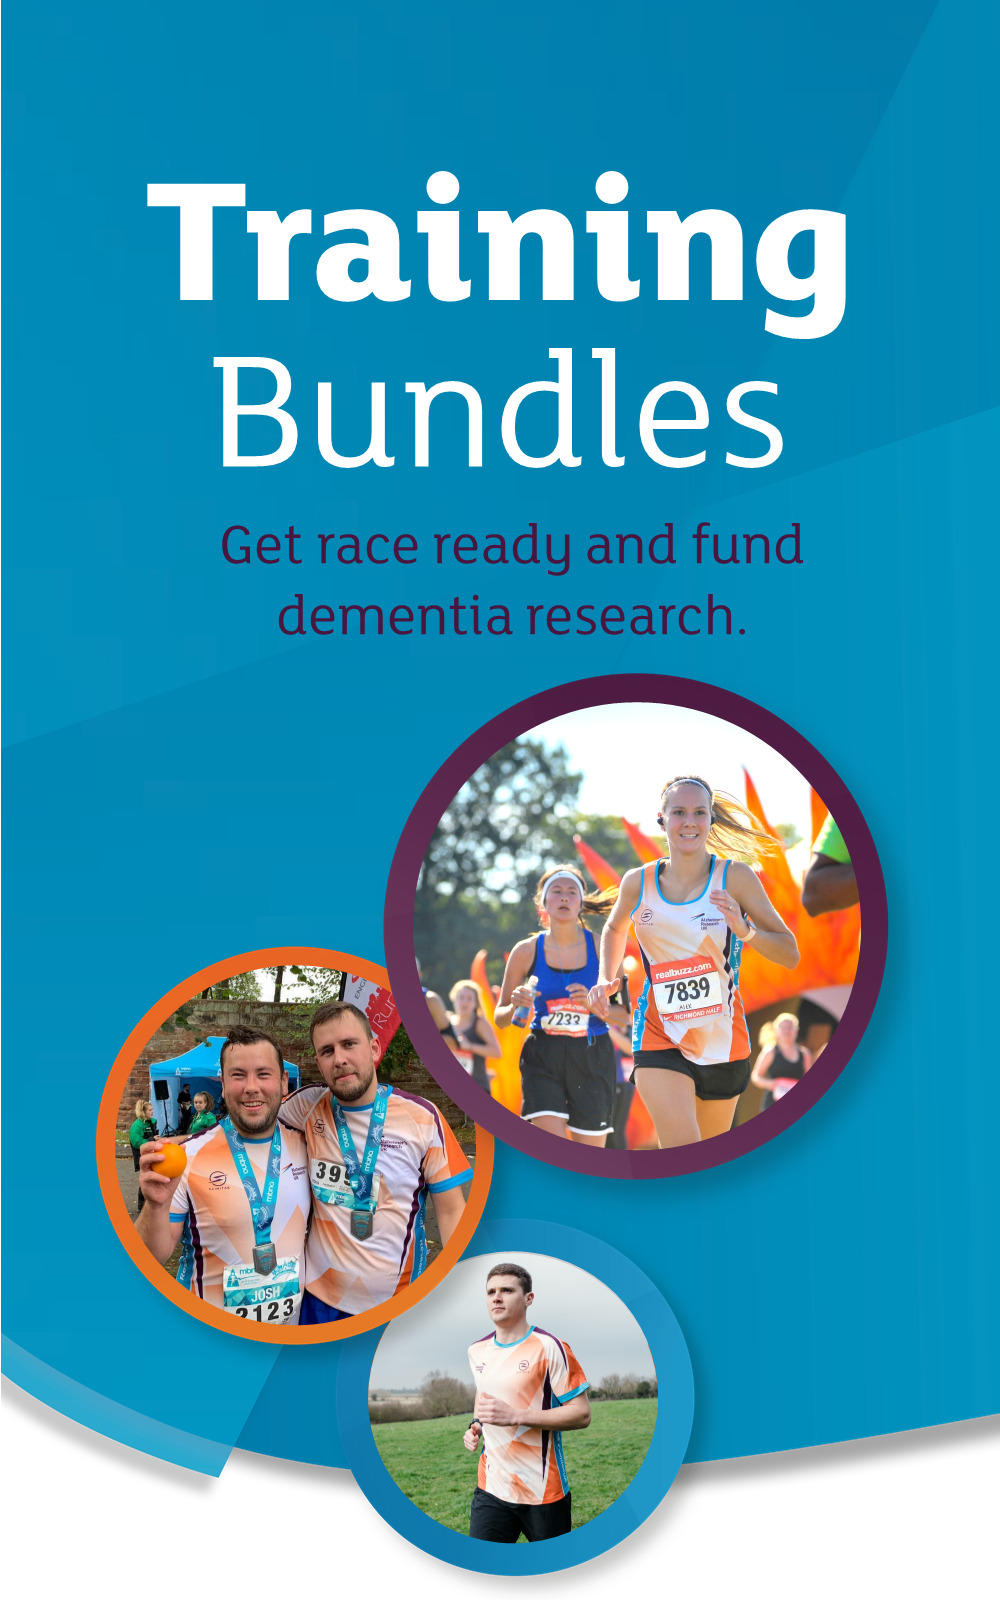 Training bundles, get race ready and fund dementia research